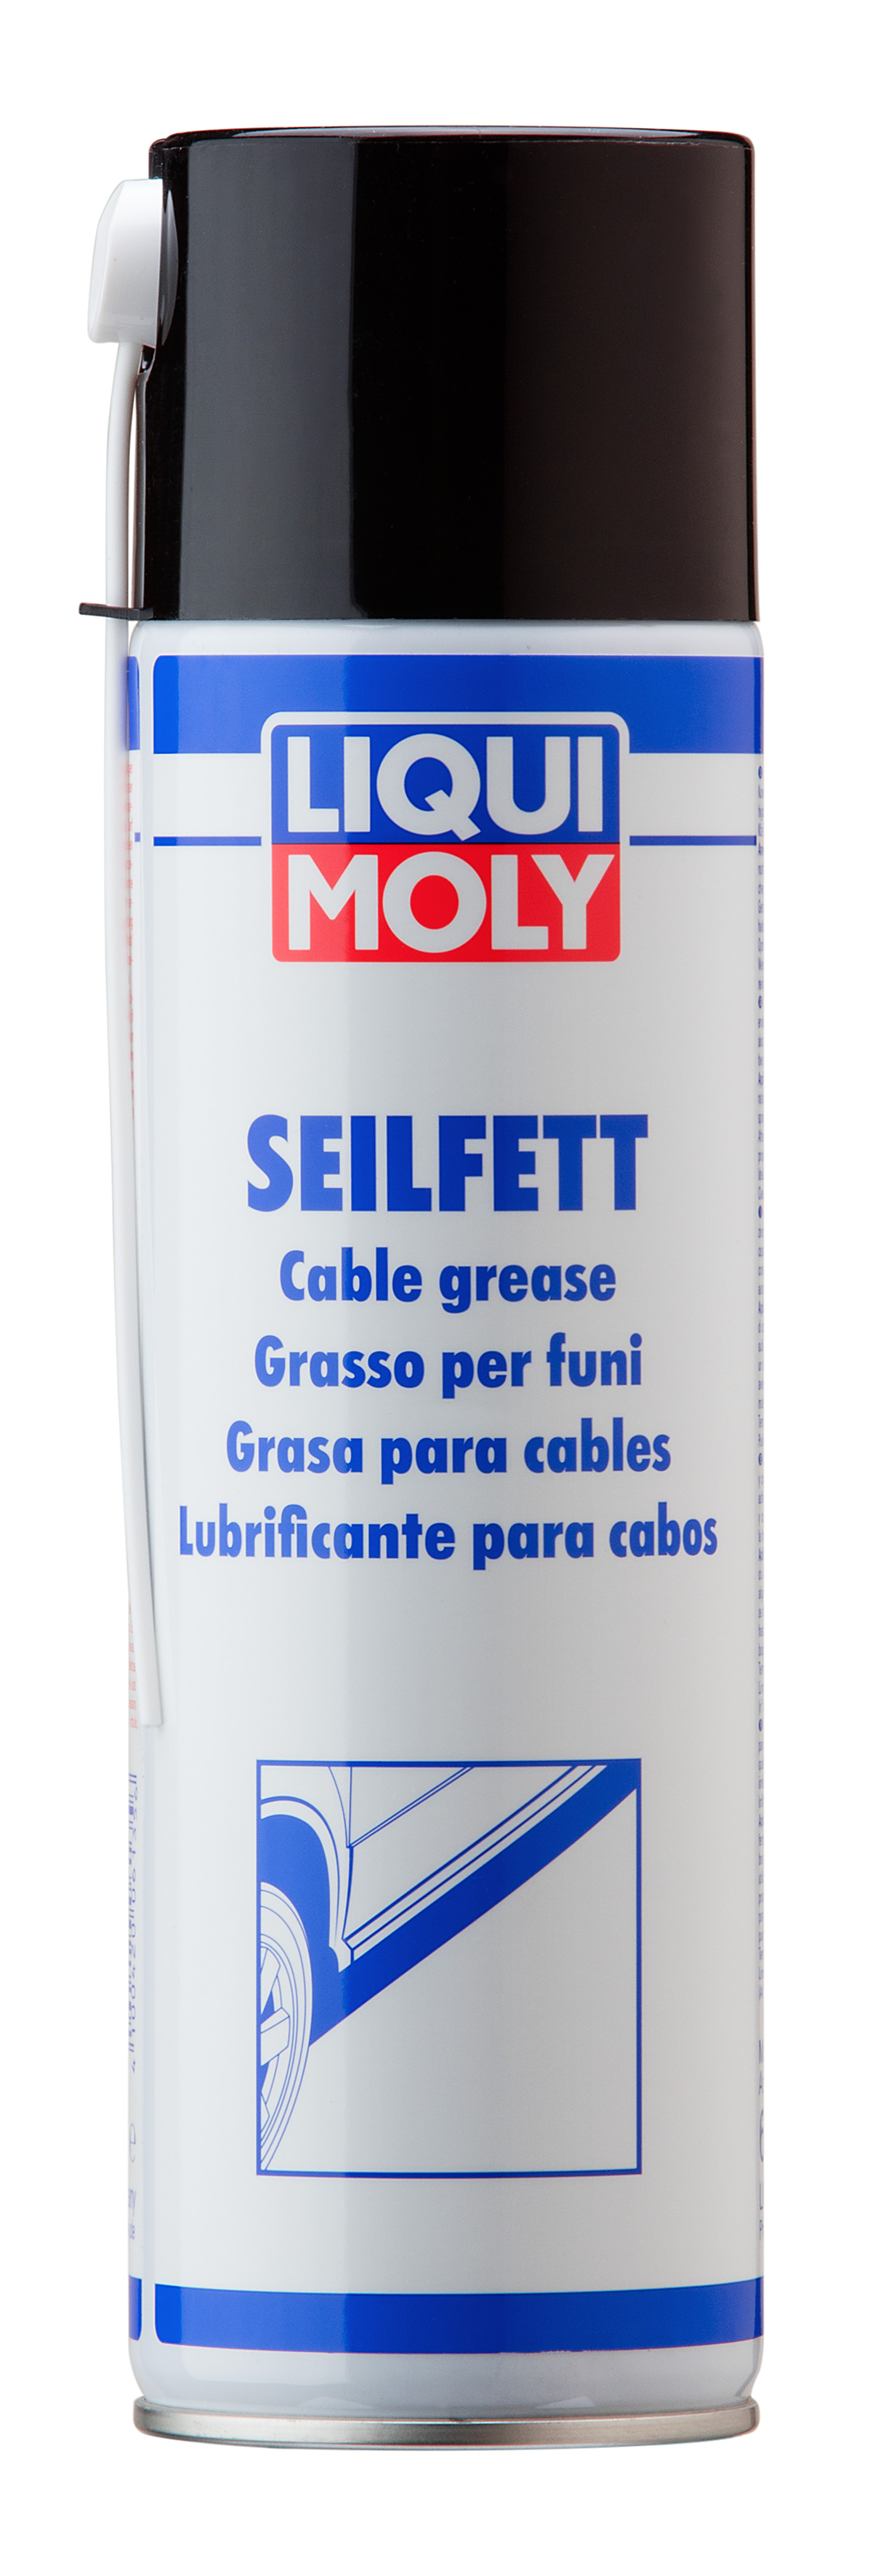 seilfett liqui moly. Black Bedroom Furniture Sets. Home Design Ideas